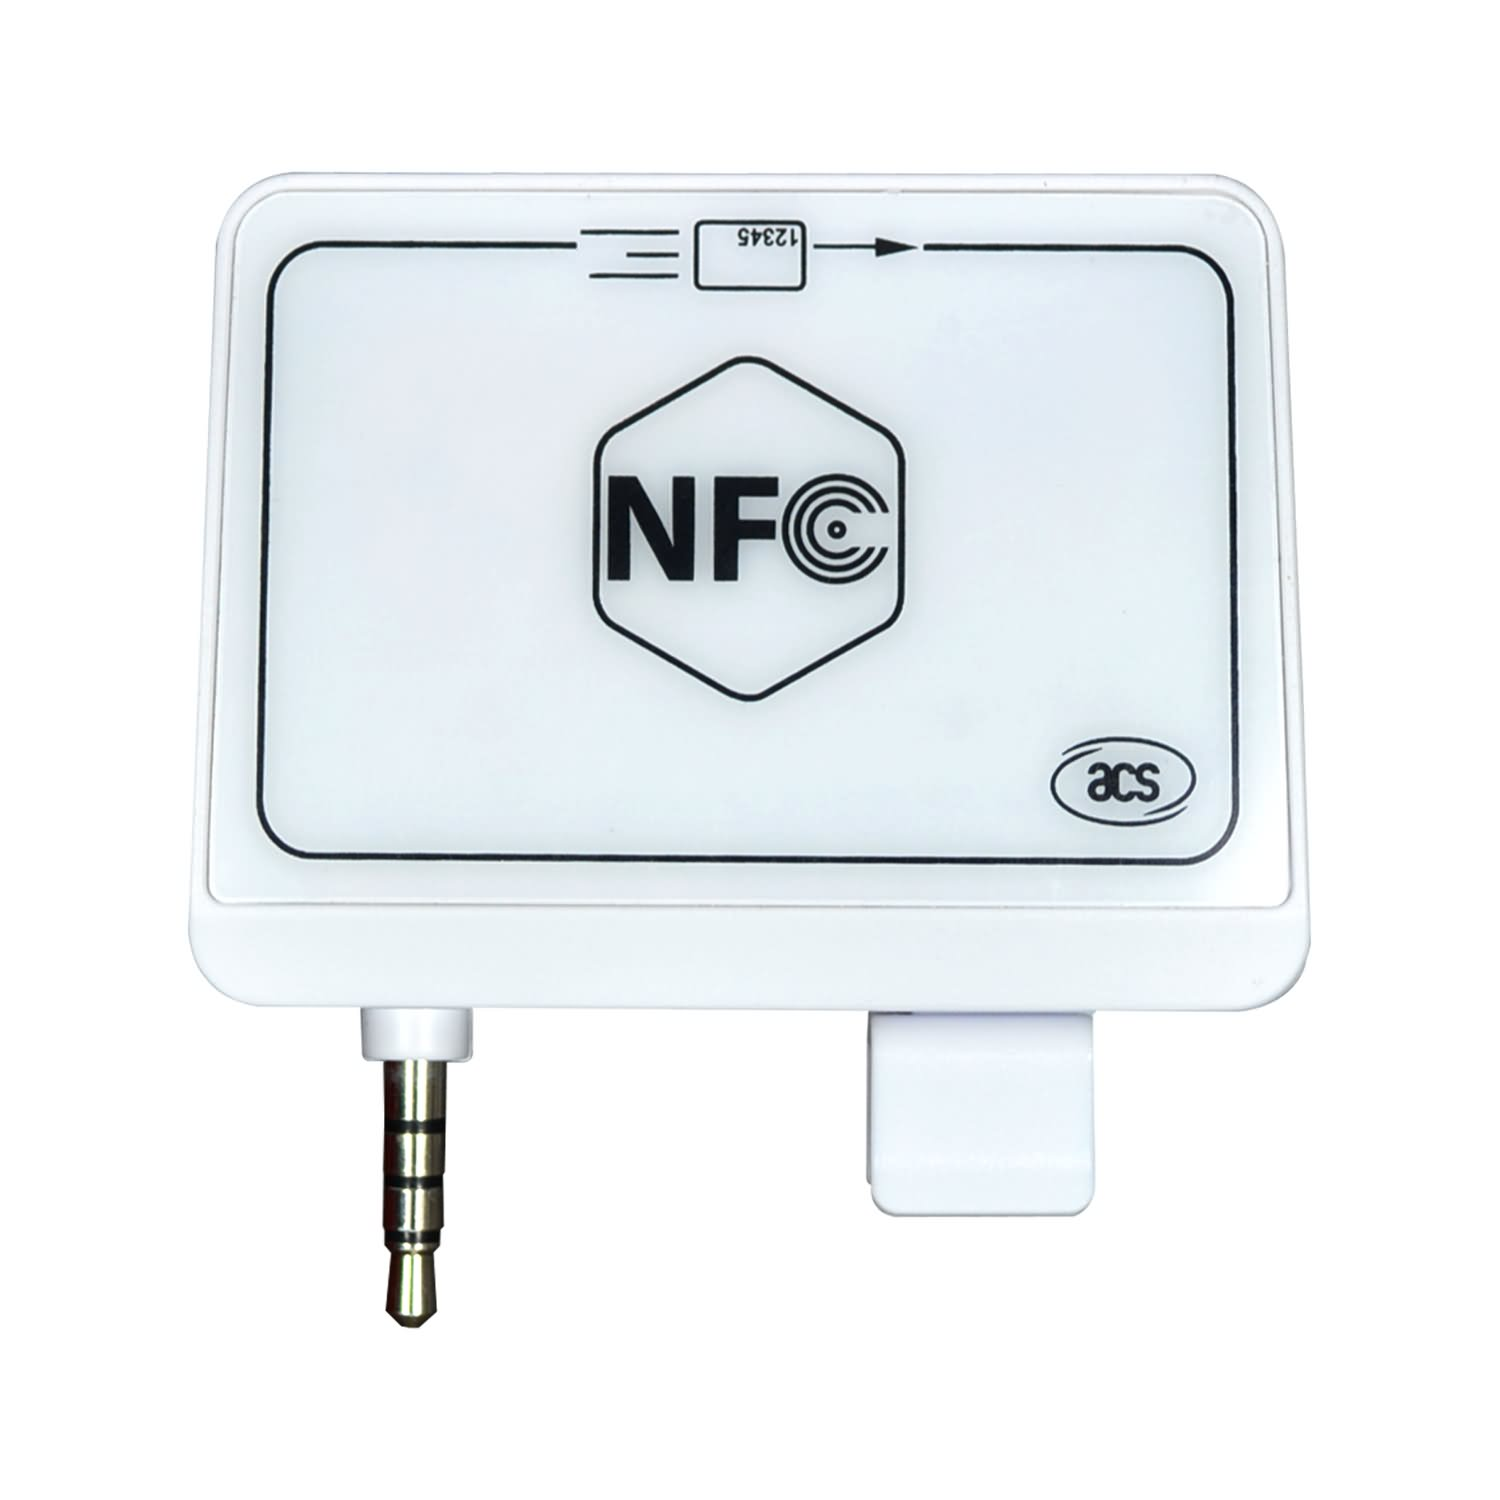 ACR35 NFC Mobile Mate Card Reader Featured Image